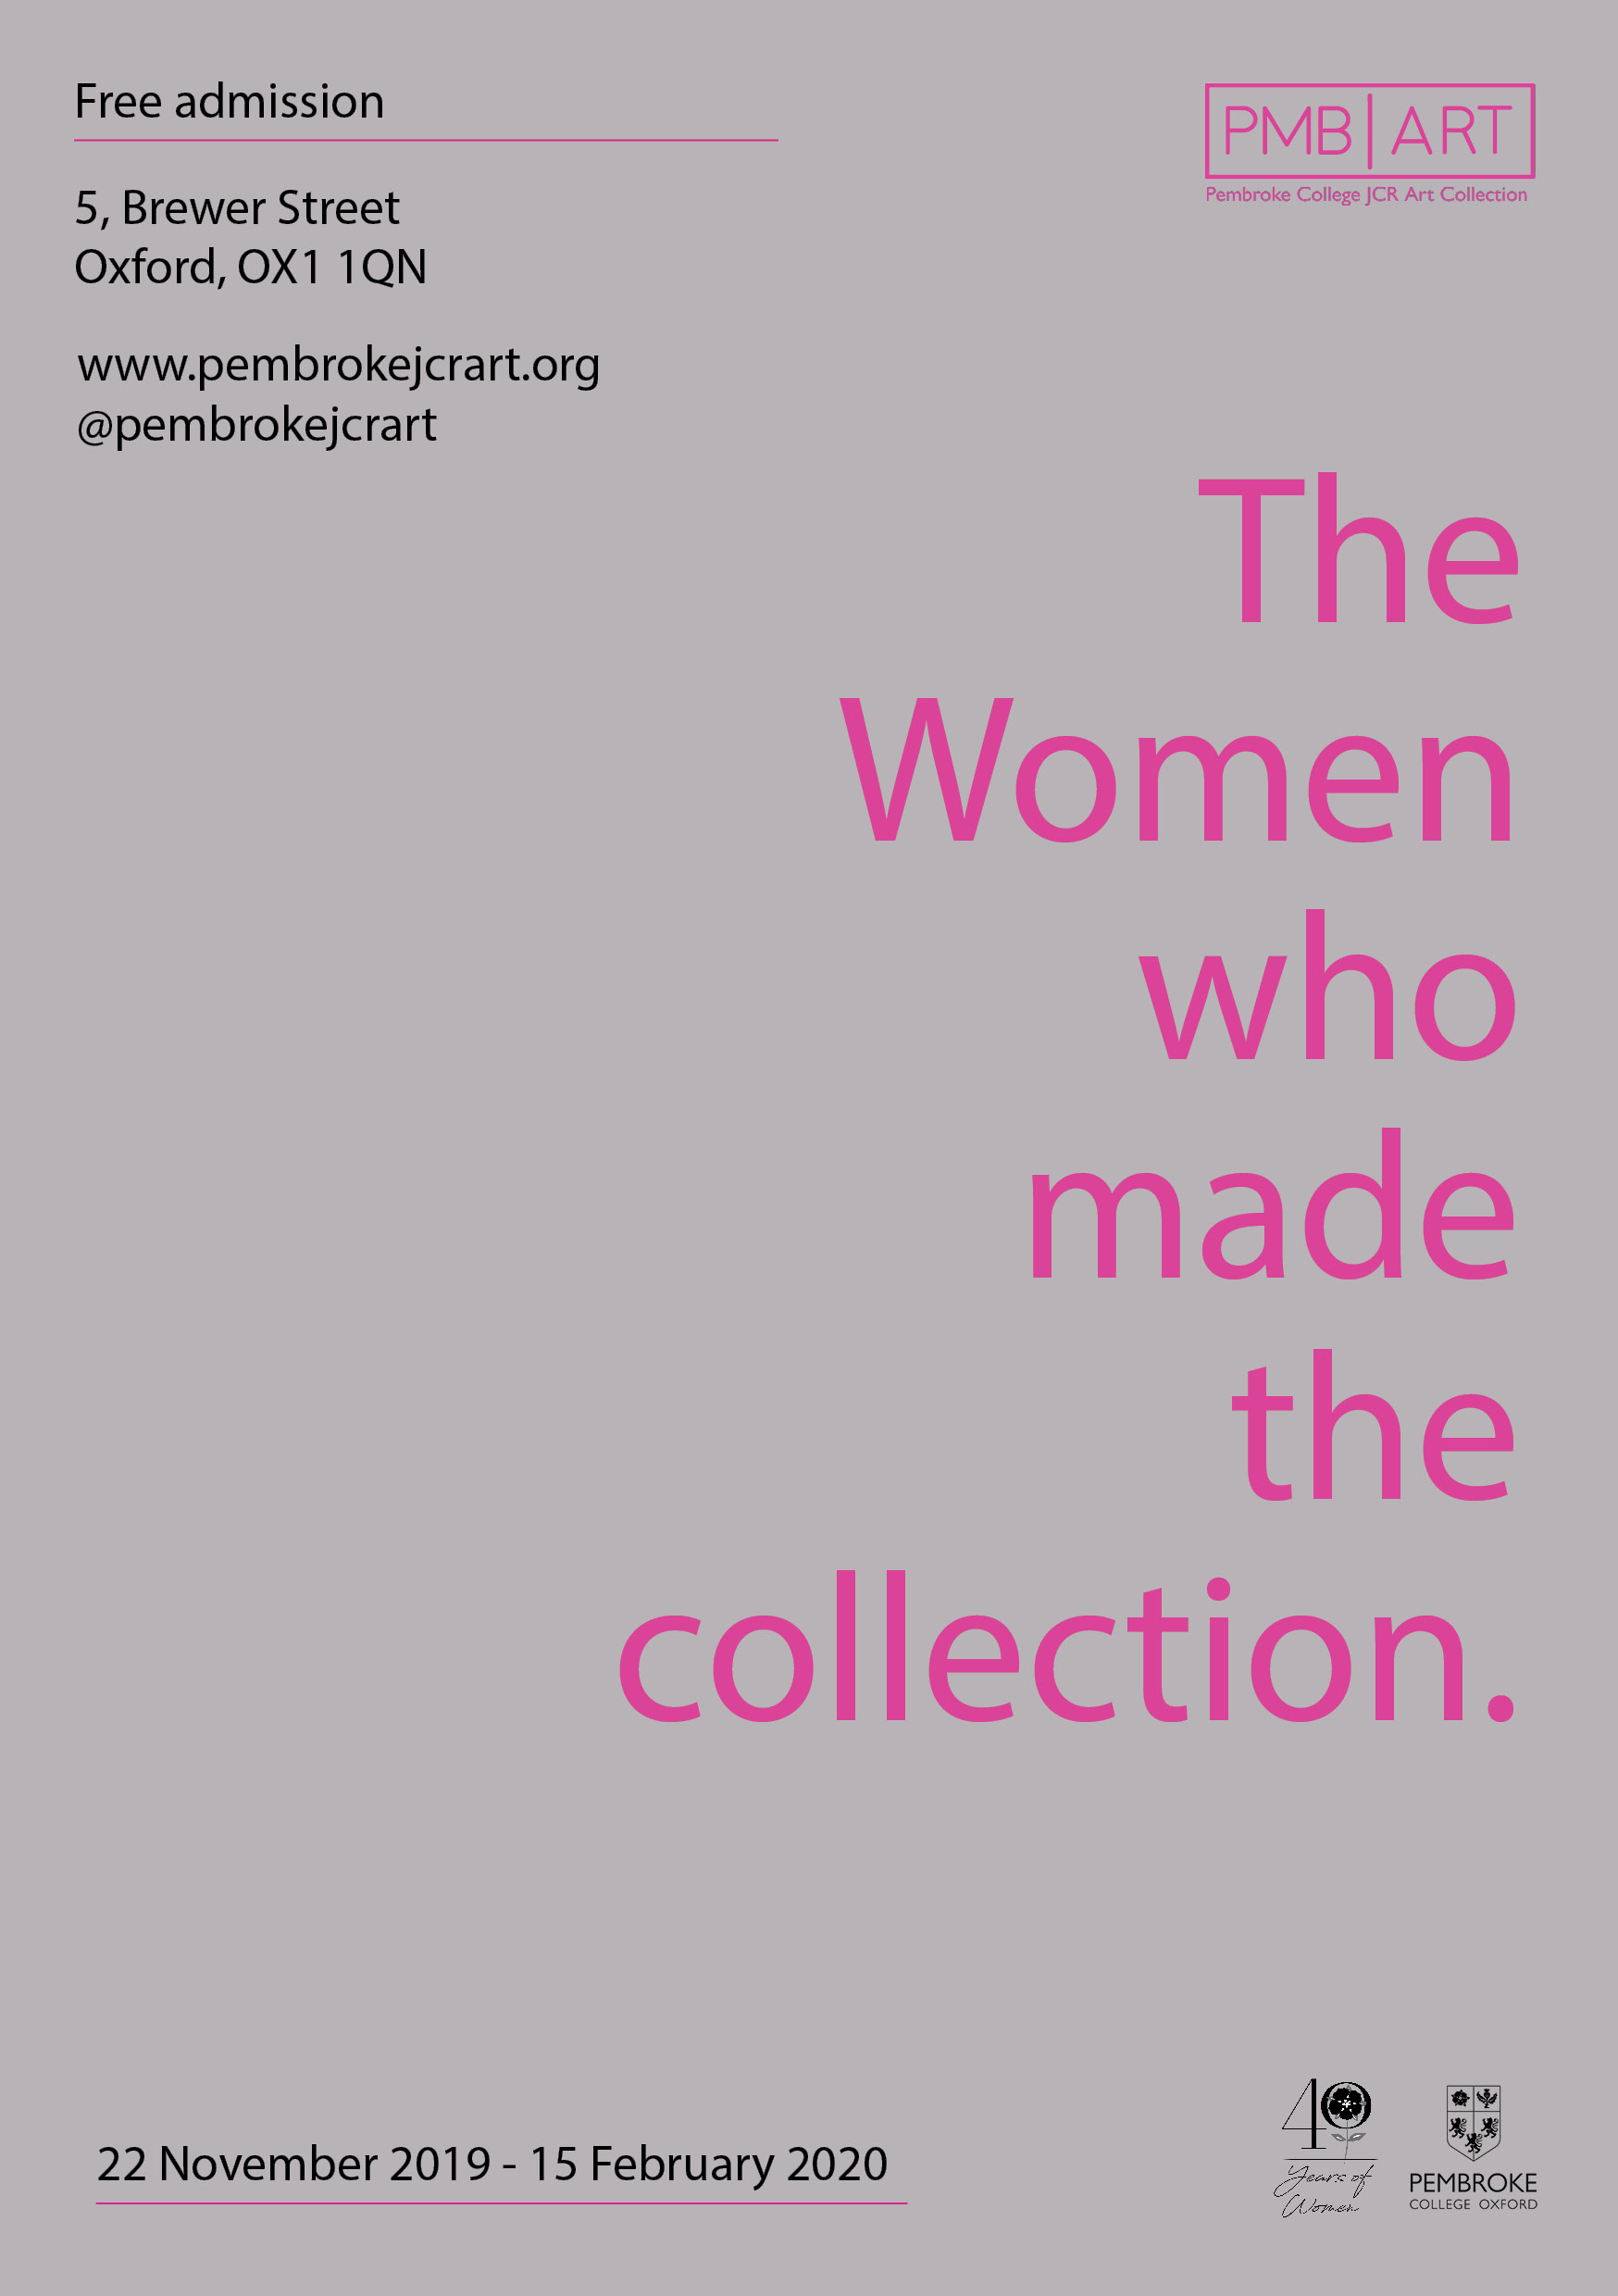 The Women who made the collection